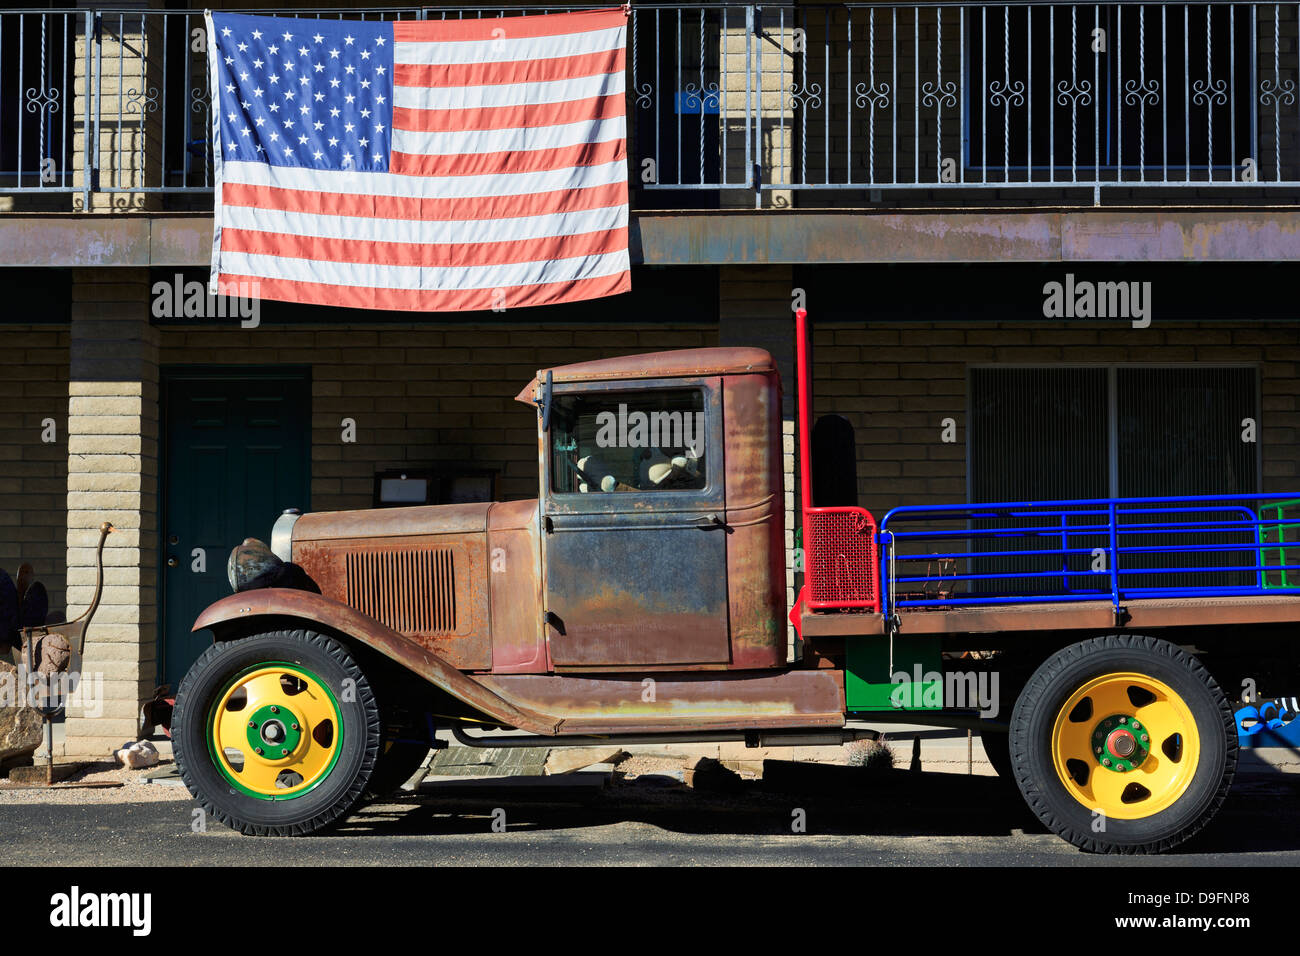 Old truck and American flag, Cave Creek, Arizona, USA - Stock Image